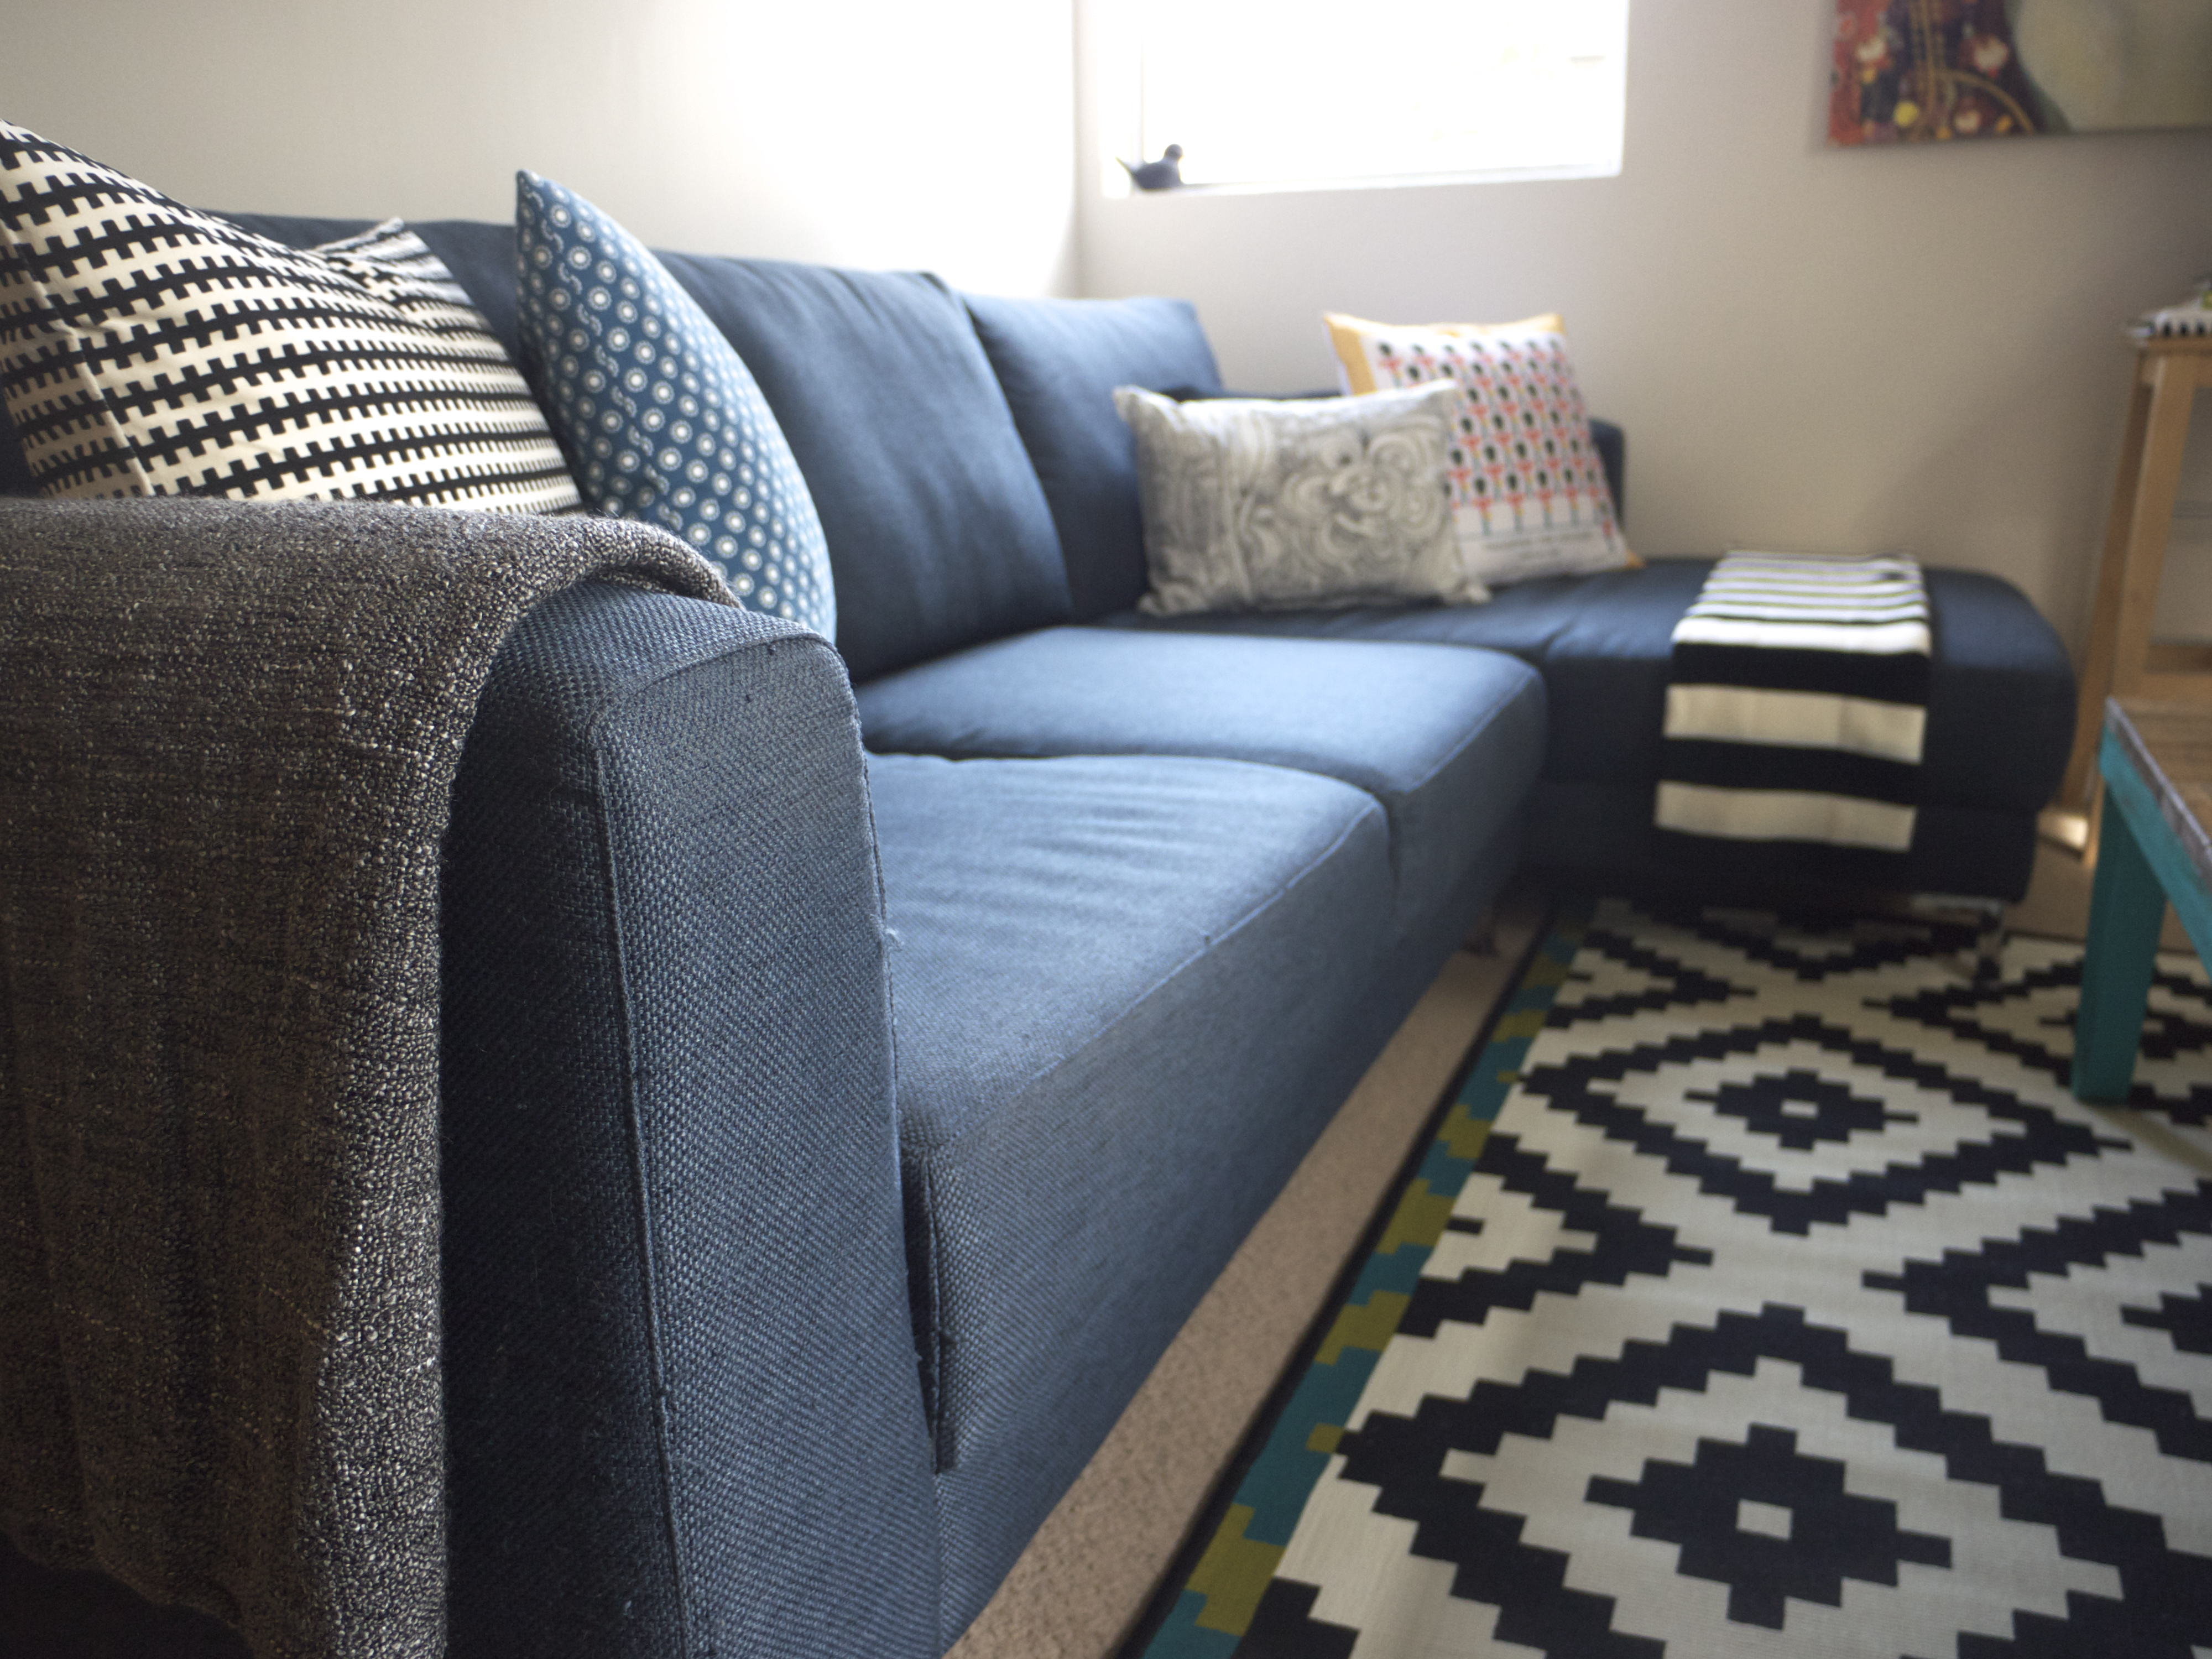 IKEA Winter Living Room Makeover - Couch, Cushions, Throw and Rug